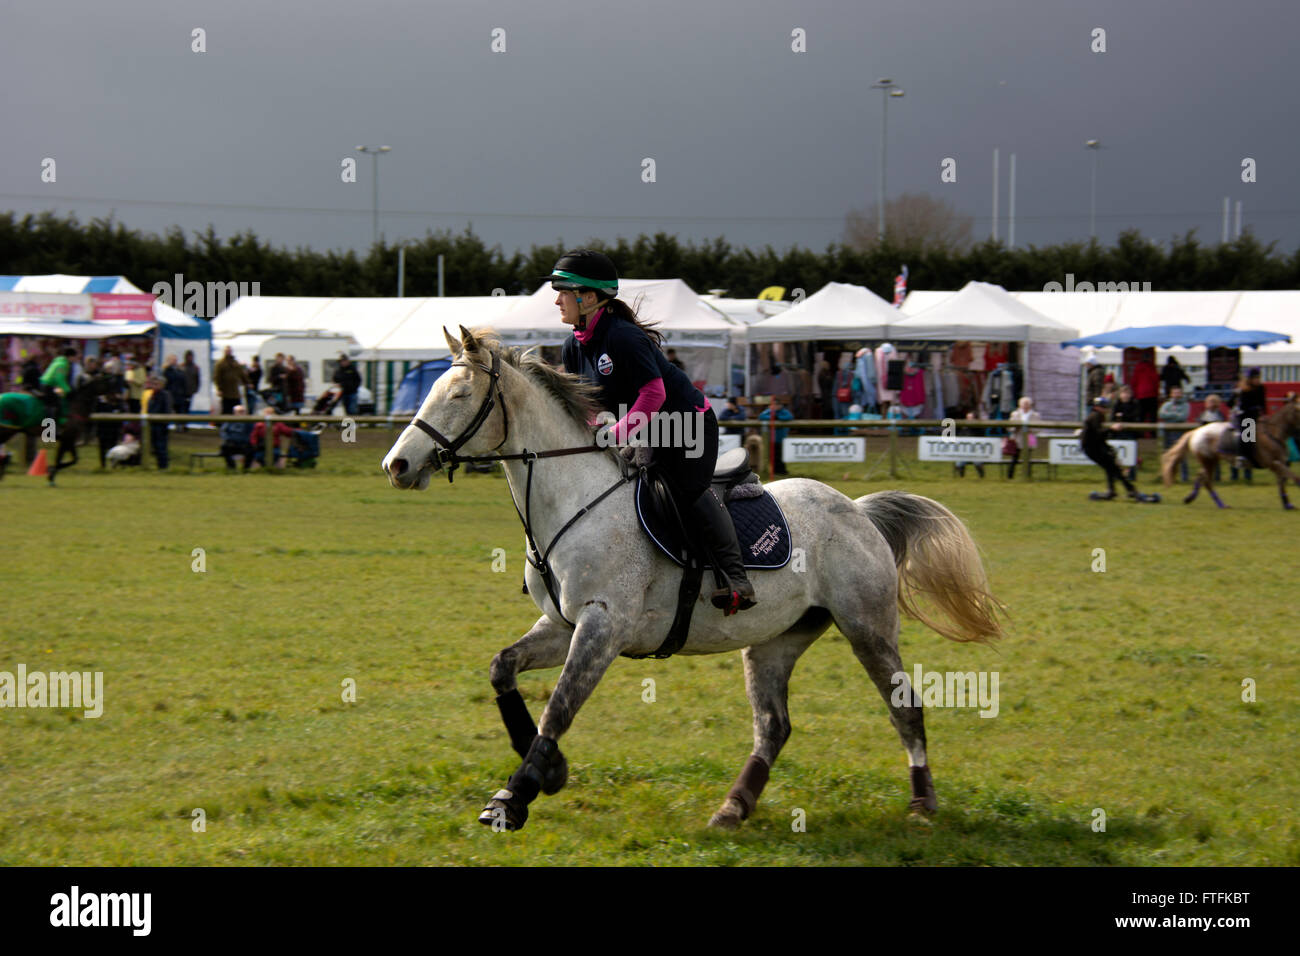 Thame, Oxon, UK. 27th March, 2016. Summer outdoor agricultural show held in Thame, United Kingdom. Credit:  David - Stock Image